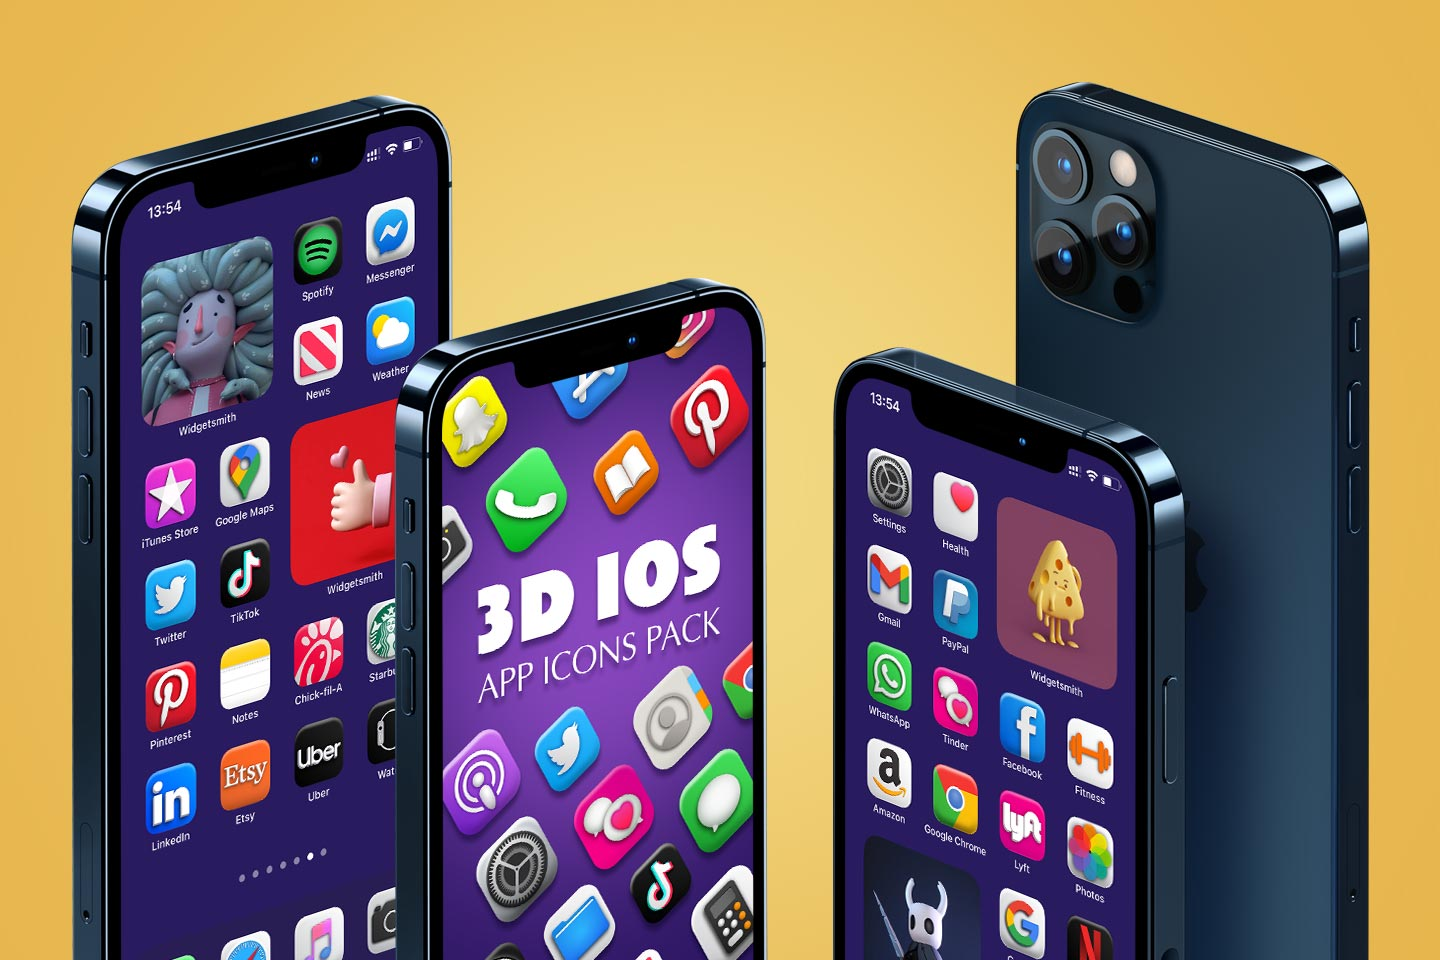 3d ios app icons pack